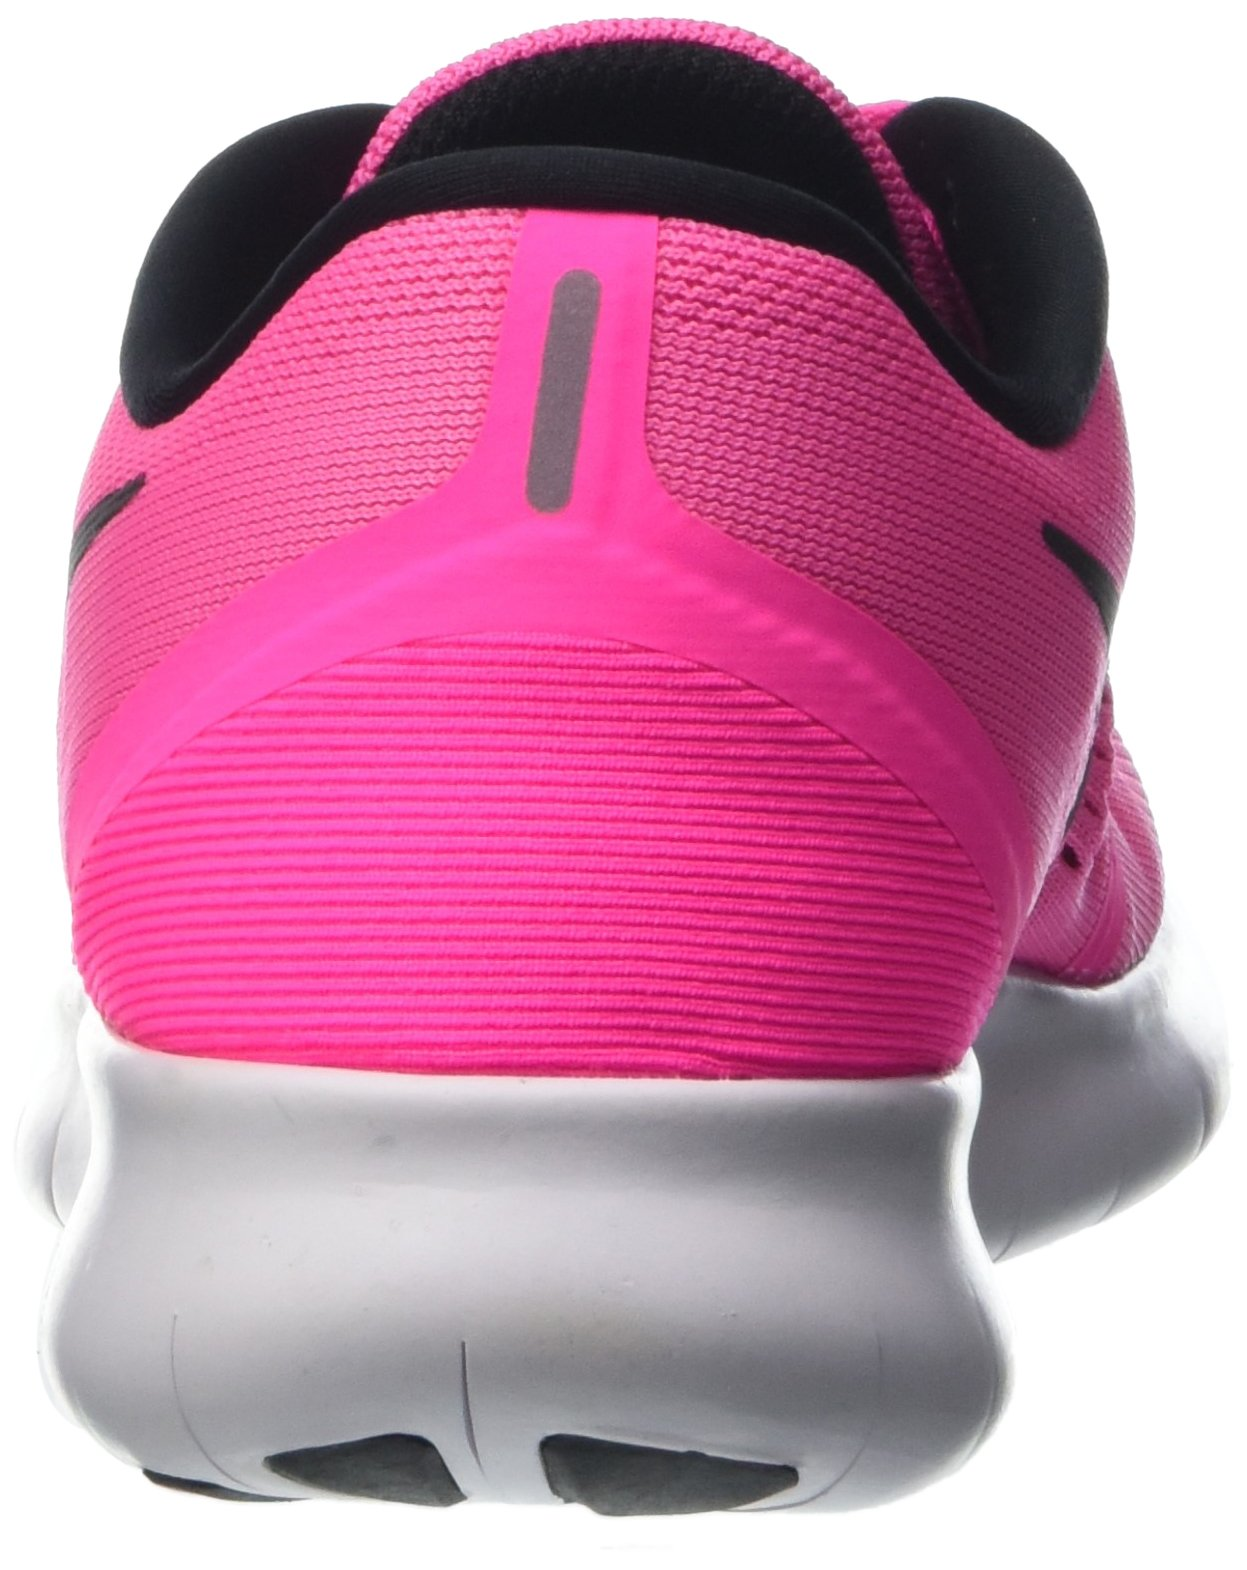 Nike Womens Free RN Running Shoes Pink Blast/Fire Pink/White/Black 5 B(M) US by Nike (Image #2)